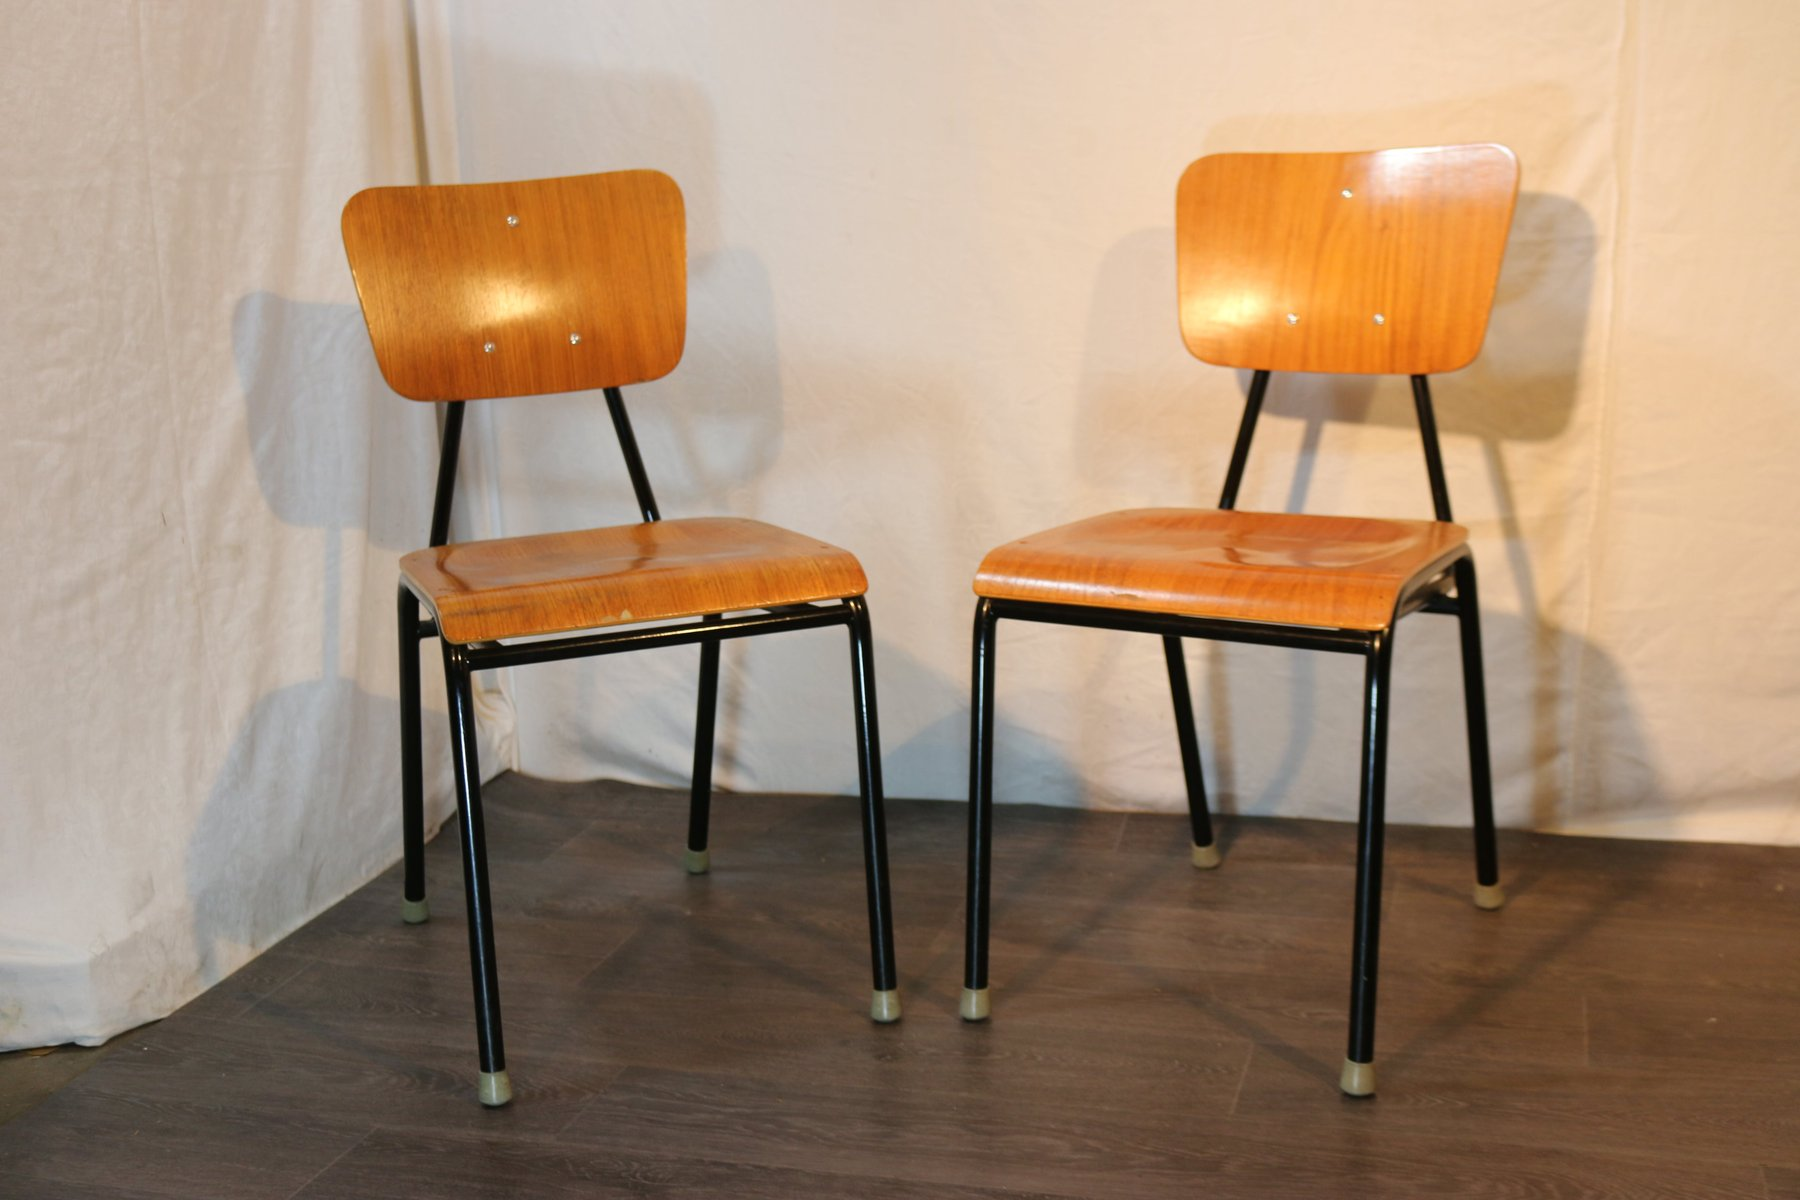 Vintage School Chairs Vintage School Chairs 1960s Set Of 2